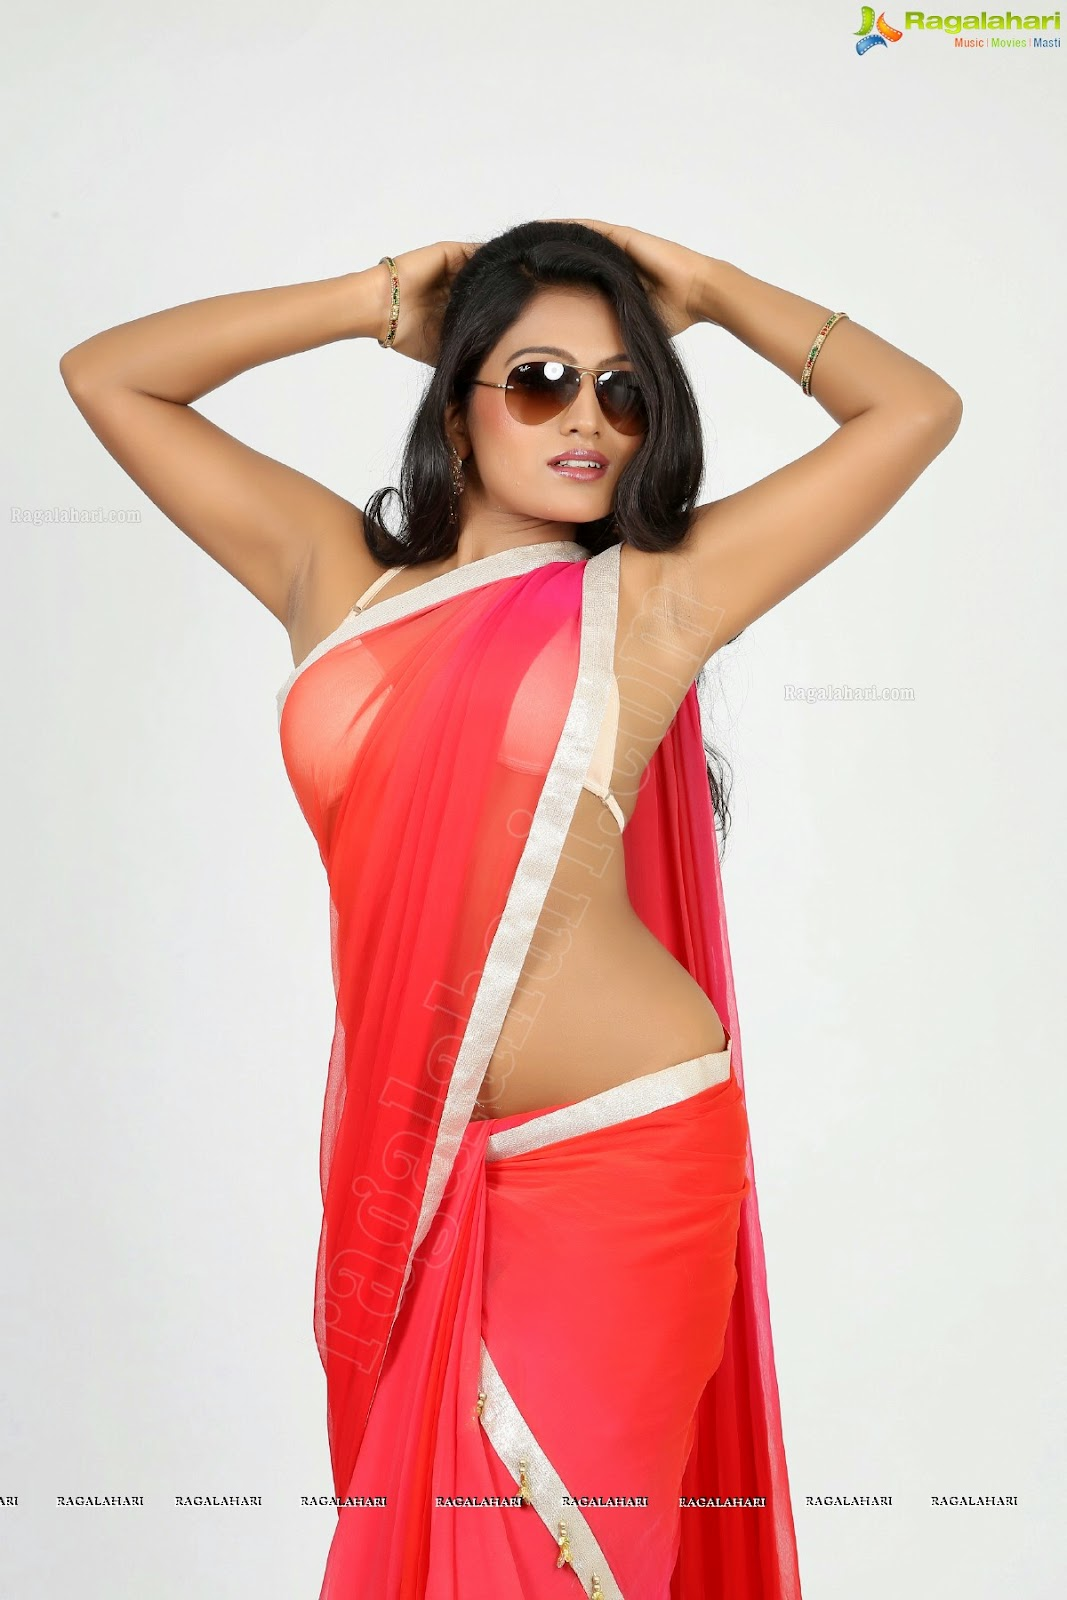 Mamatha Rahuth hot armpit show in saree Mamatha Rahuth Hot Photo Shoot,Mamatha Rahuth Hot Photos,Actress Mamatha Rahuth Latest Photos,Mamatha Rahuth Hot Photos,Mamatha Rahuth Spicy Stills,Mamatha Rahuth Spicy Pics,Mamatha Rahuth Hot Stills,Mamatha Rahuth Wallpapers,Mamatha Rahuth Photos,Mamatha Rahuth Images,Mamatha Rahuth SareE Photos,Mamatha Rahuth Navel Show Photos,Mamatha Rahuth Stills,Mamatha Rahuth,Mamatha Rahuth Hot Photo Shoot Mamatha Rahuth Armpit and Nipple Show boobs show Armpit Actress  Mamatha Rahuth  Smoking Hot & Spicy Pics In a Bikini... Armpit Actress  Mamatha Rahuth  Latest Smoking Hot & Spicy Portfolio Pics...Don't Miss..!! Armpit Actress  Mamatha Rahuth  Sexy Babe's Latest Spicy Photoshoot Pics.. Armpit Actress  Mamatha Rahuth  Showing Her Awesome Hot Thighs..Spicy Pics... Armpit Actress  Mamatha Rahuth  Spicy Low Neck Massieve Melons Armpit Actress  Mamatha Rahuth  photos, Armpit Actress  Mamatha Rahuth  bikini photos, Actress bikini photos, Armpit Actress  Mamatha Rahuth  hot bikini, Armpit Actress  Mamatha Rahuth  bikini pics, Armpit Actress  Mamatha Rahuth  spicy stills, Armpit Actress Sravya, Armpit Actress  Mamatha Rahuth  photos Mamatha Rahuth  armpit show Mamatha Rahuth Smoking Hot & Sexy Photoshoot In aSexy Shorts & Sleevless Top.. Mamatha Rahuth Showing Her Awesome Hot Thunder Thighs In a Blue Mini Skirt.... Mamatha Rahuth, Mamatha Rahuth stills, Mamatha Rahuth photos, Mamatha Rahuth hot and spicy stills, Mamatha Rahuth spicy gallery, Mamatha Rahuth heroine, spicy Mamatha Rahuth, hot Mamatha Rahuth, Mamatha Rahuth exposing stills, Mamatha Rahuth sexy stills, spicy actress stills